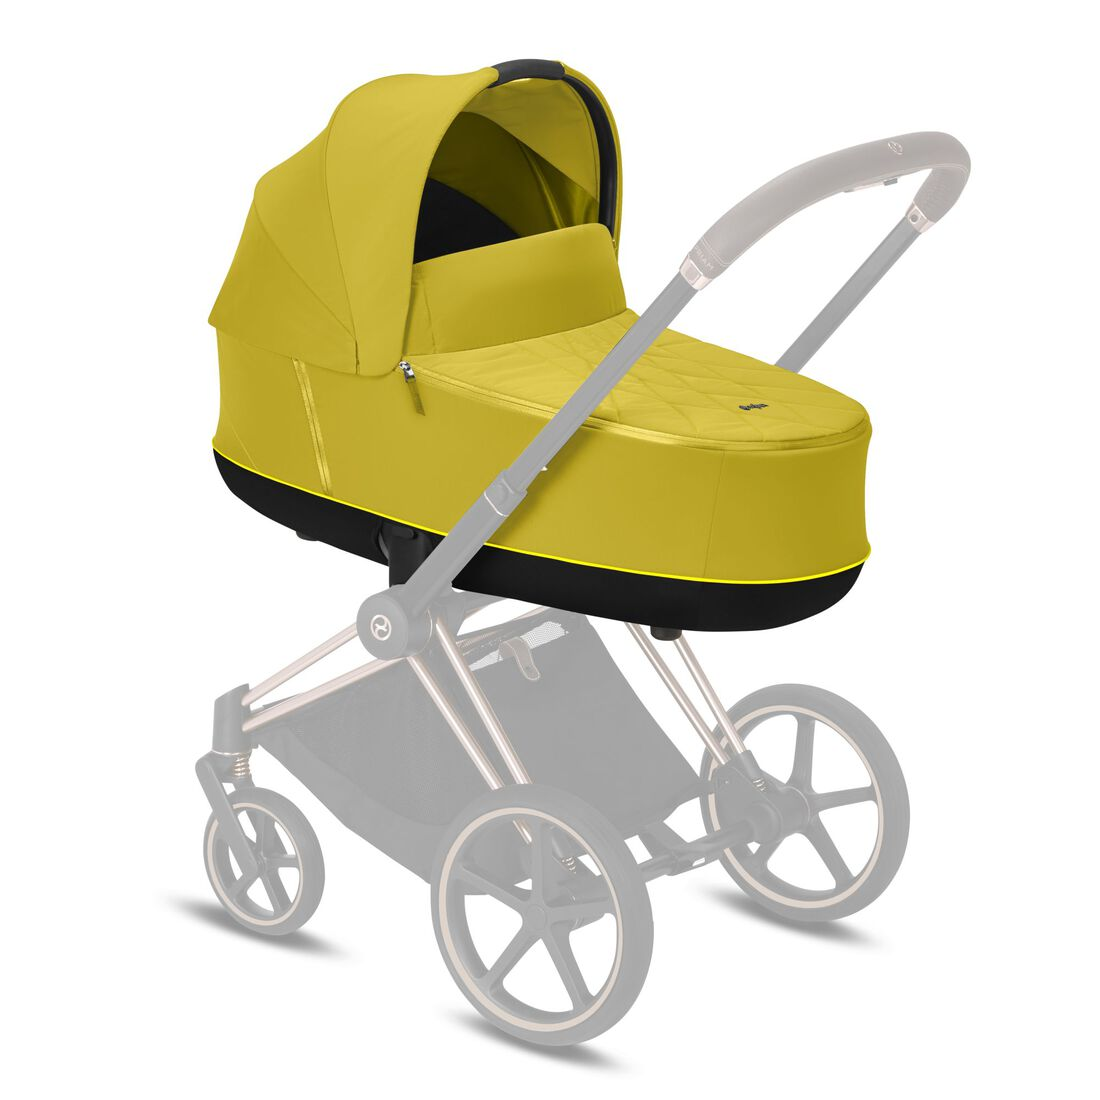 CYBEX Priam Lux Carry Cot - Mustard Yellow in Mustard Yellow large image number 5